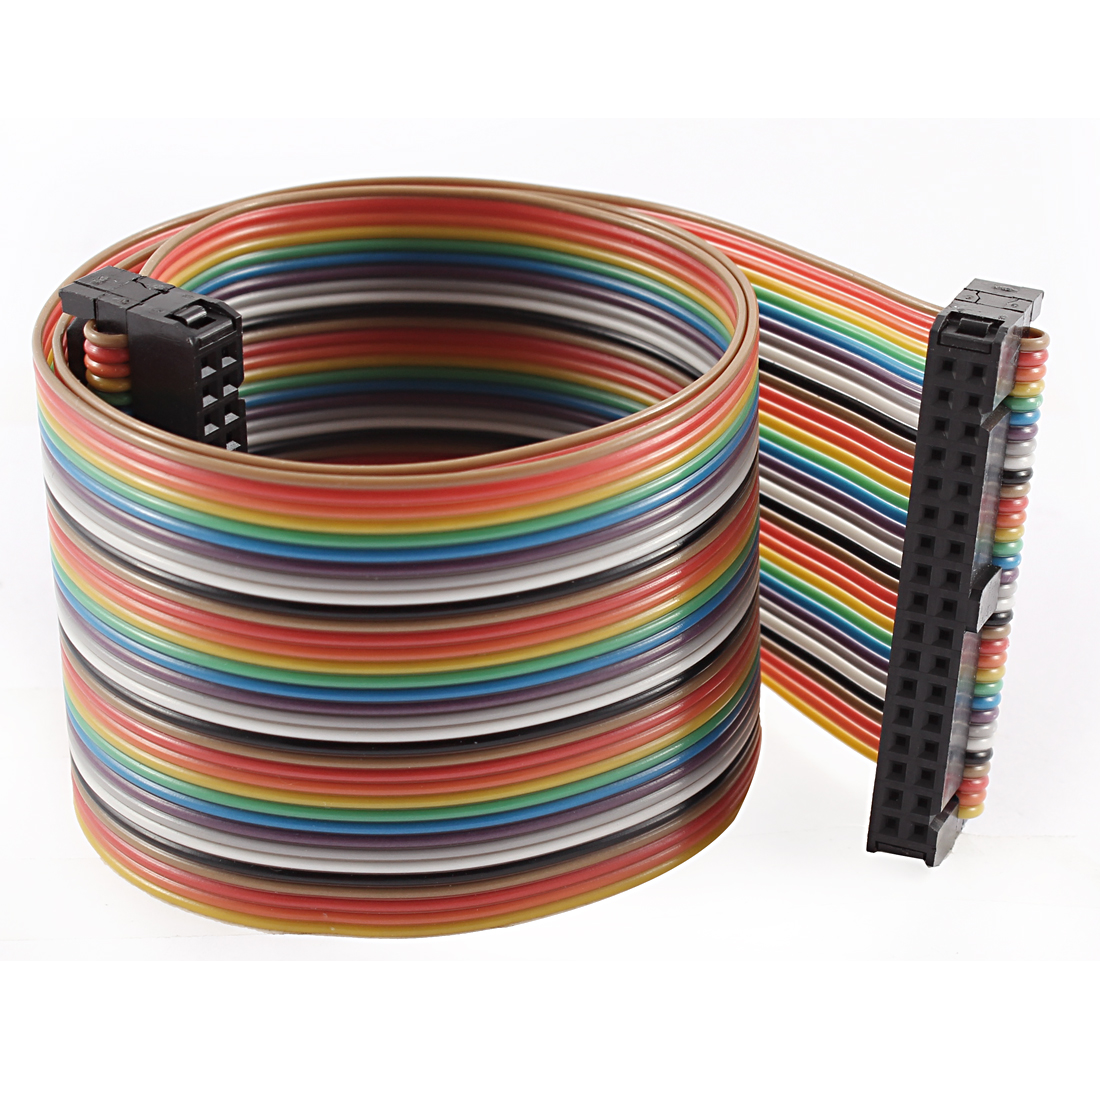 2.54mm Pitch 34 Pin 34 Way F/F Connector IDC Flat Rainbow Ribbon Cable 48cm